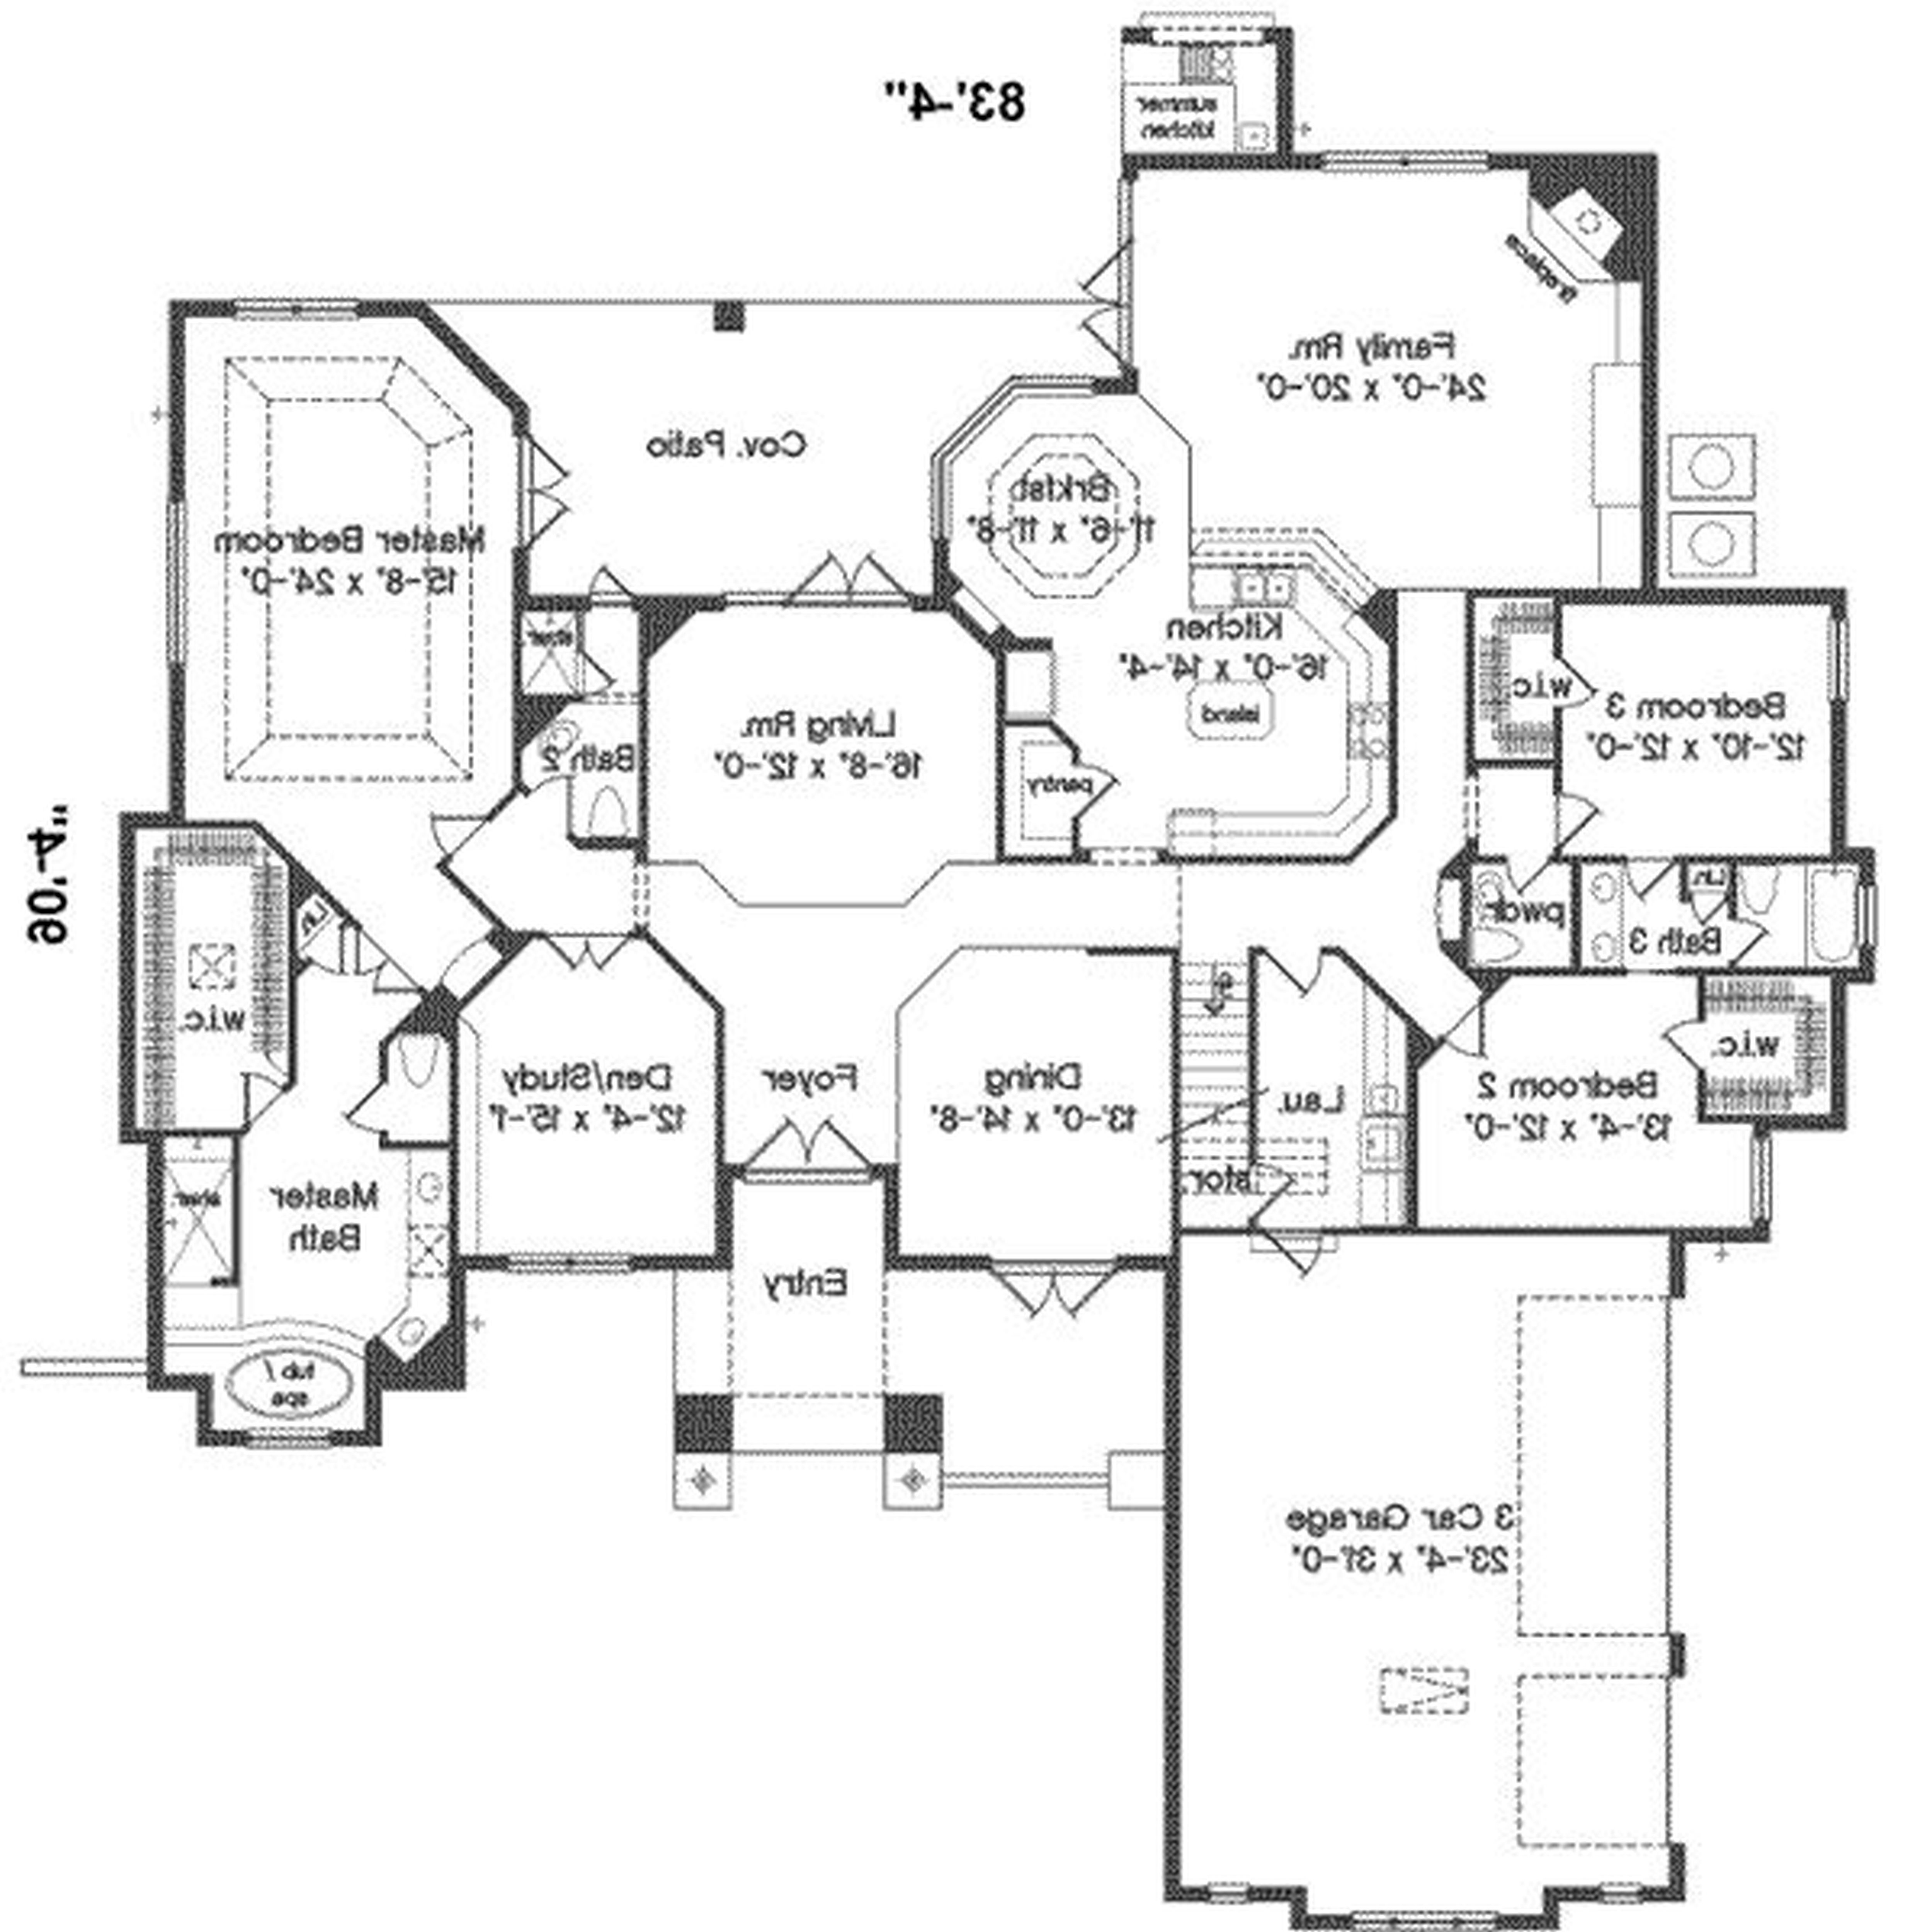 Rooms Drawing At Free For Personal Use Interior Design Diagrams 5000x5000 Architecture Floor Plan Maker Designs Cad